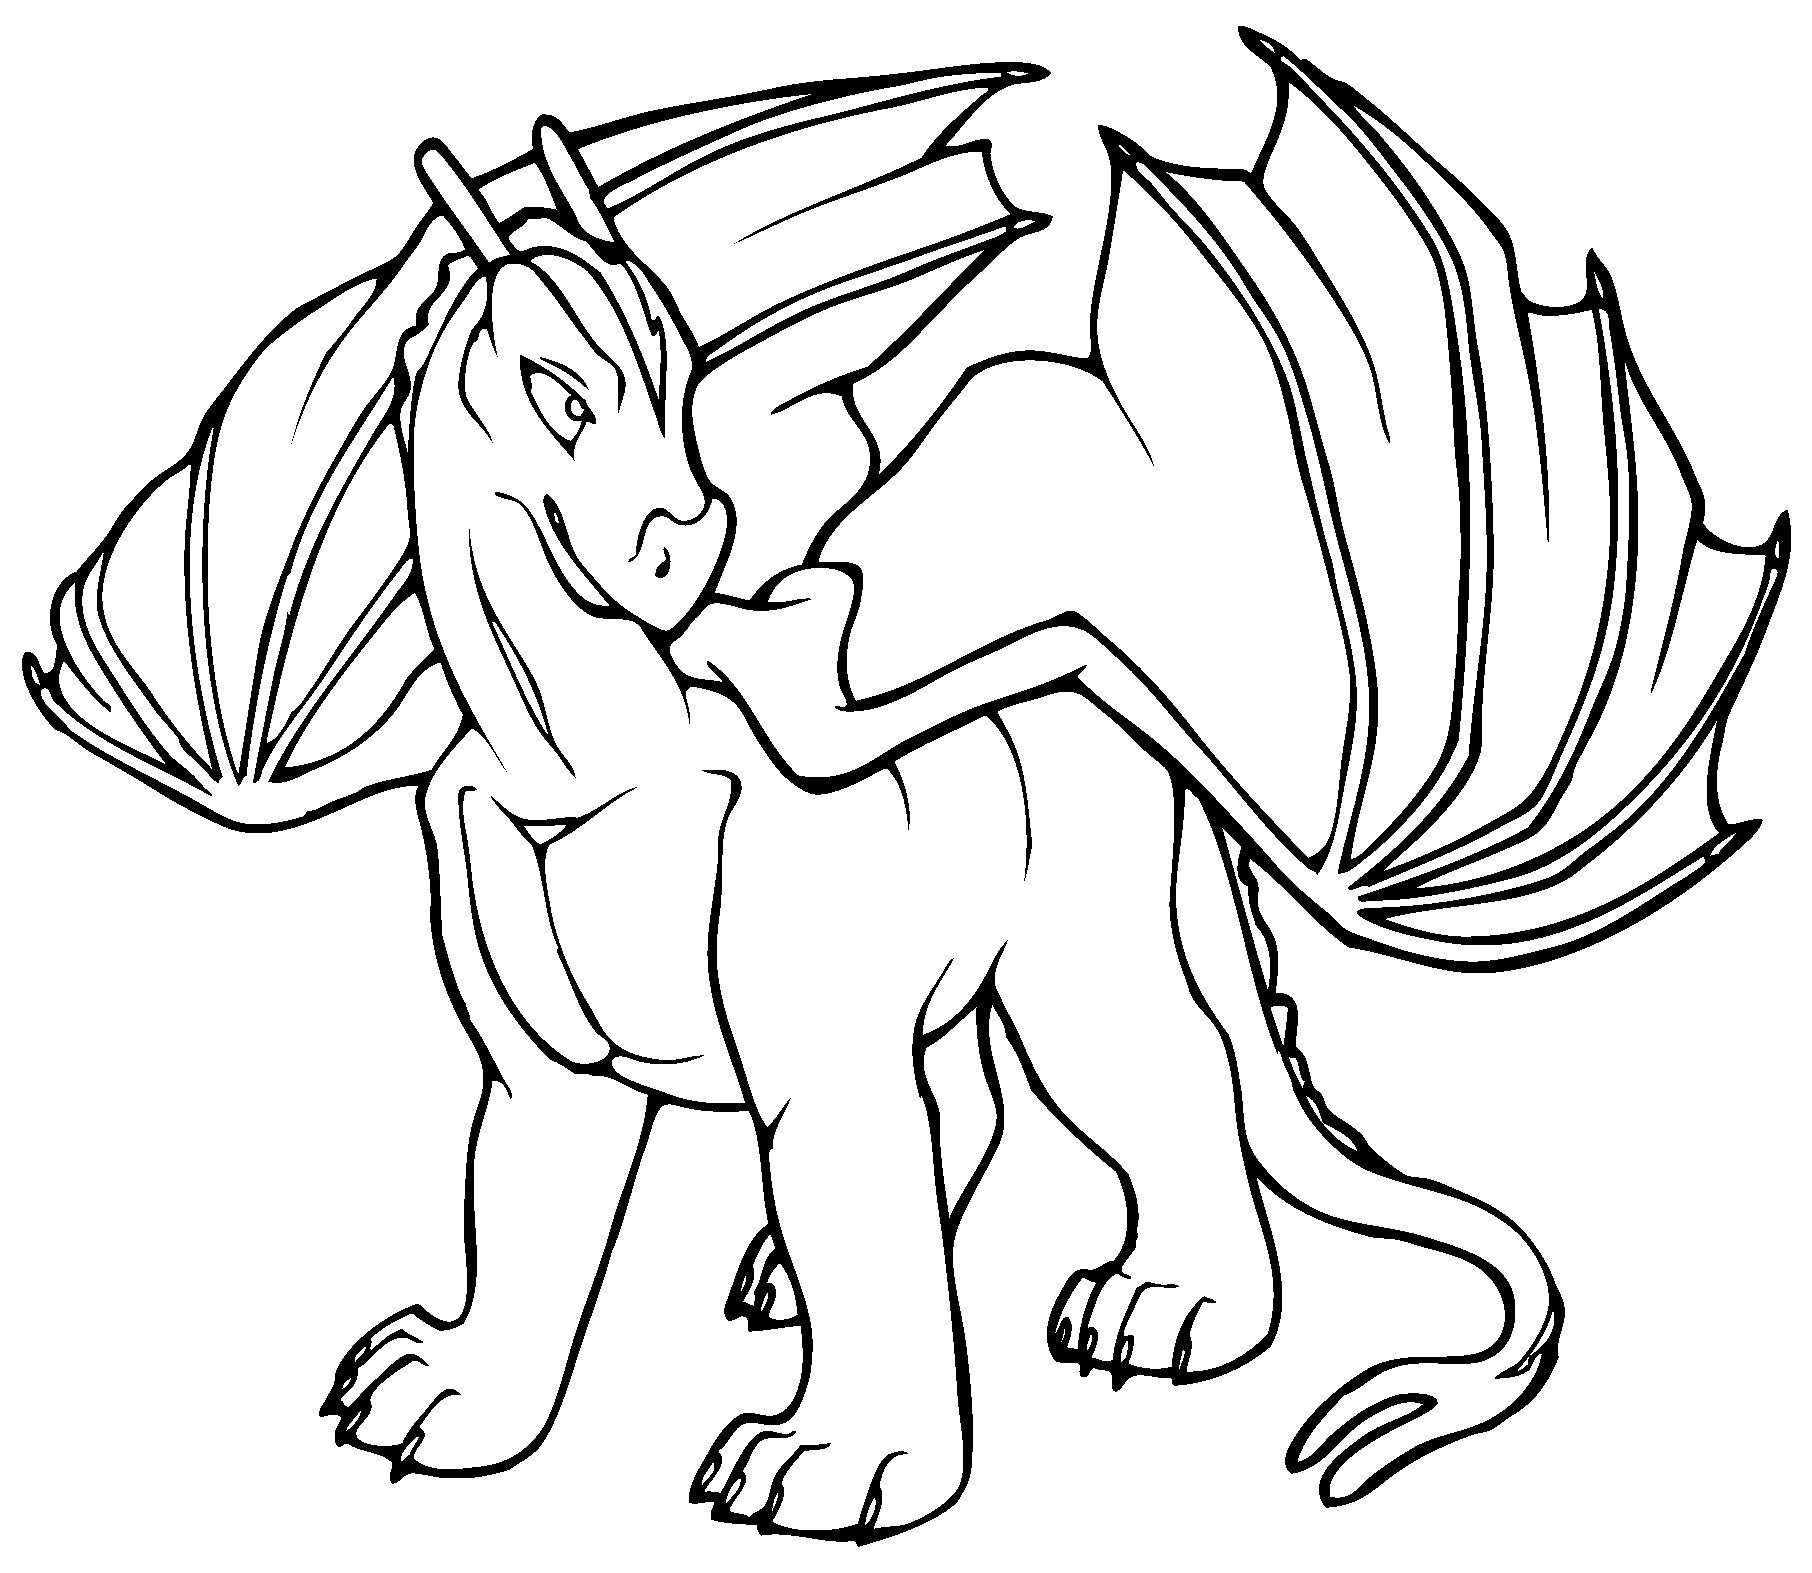 1812x1573 Simple Cartoon Dragon Coloring Pages Has Dragon Coloring Pages